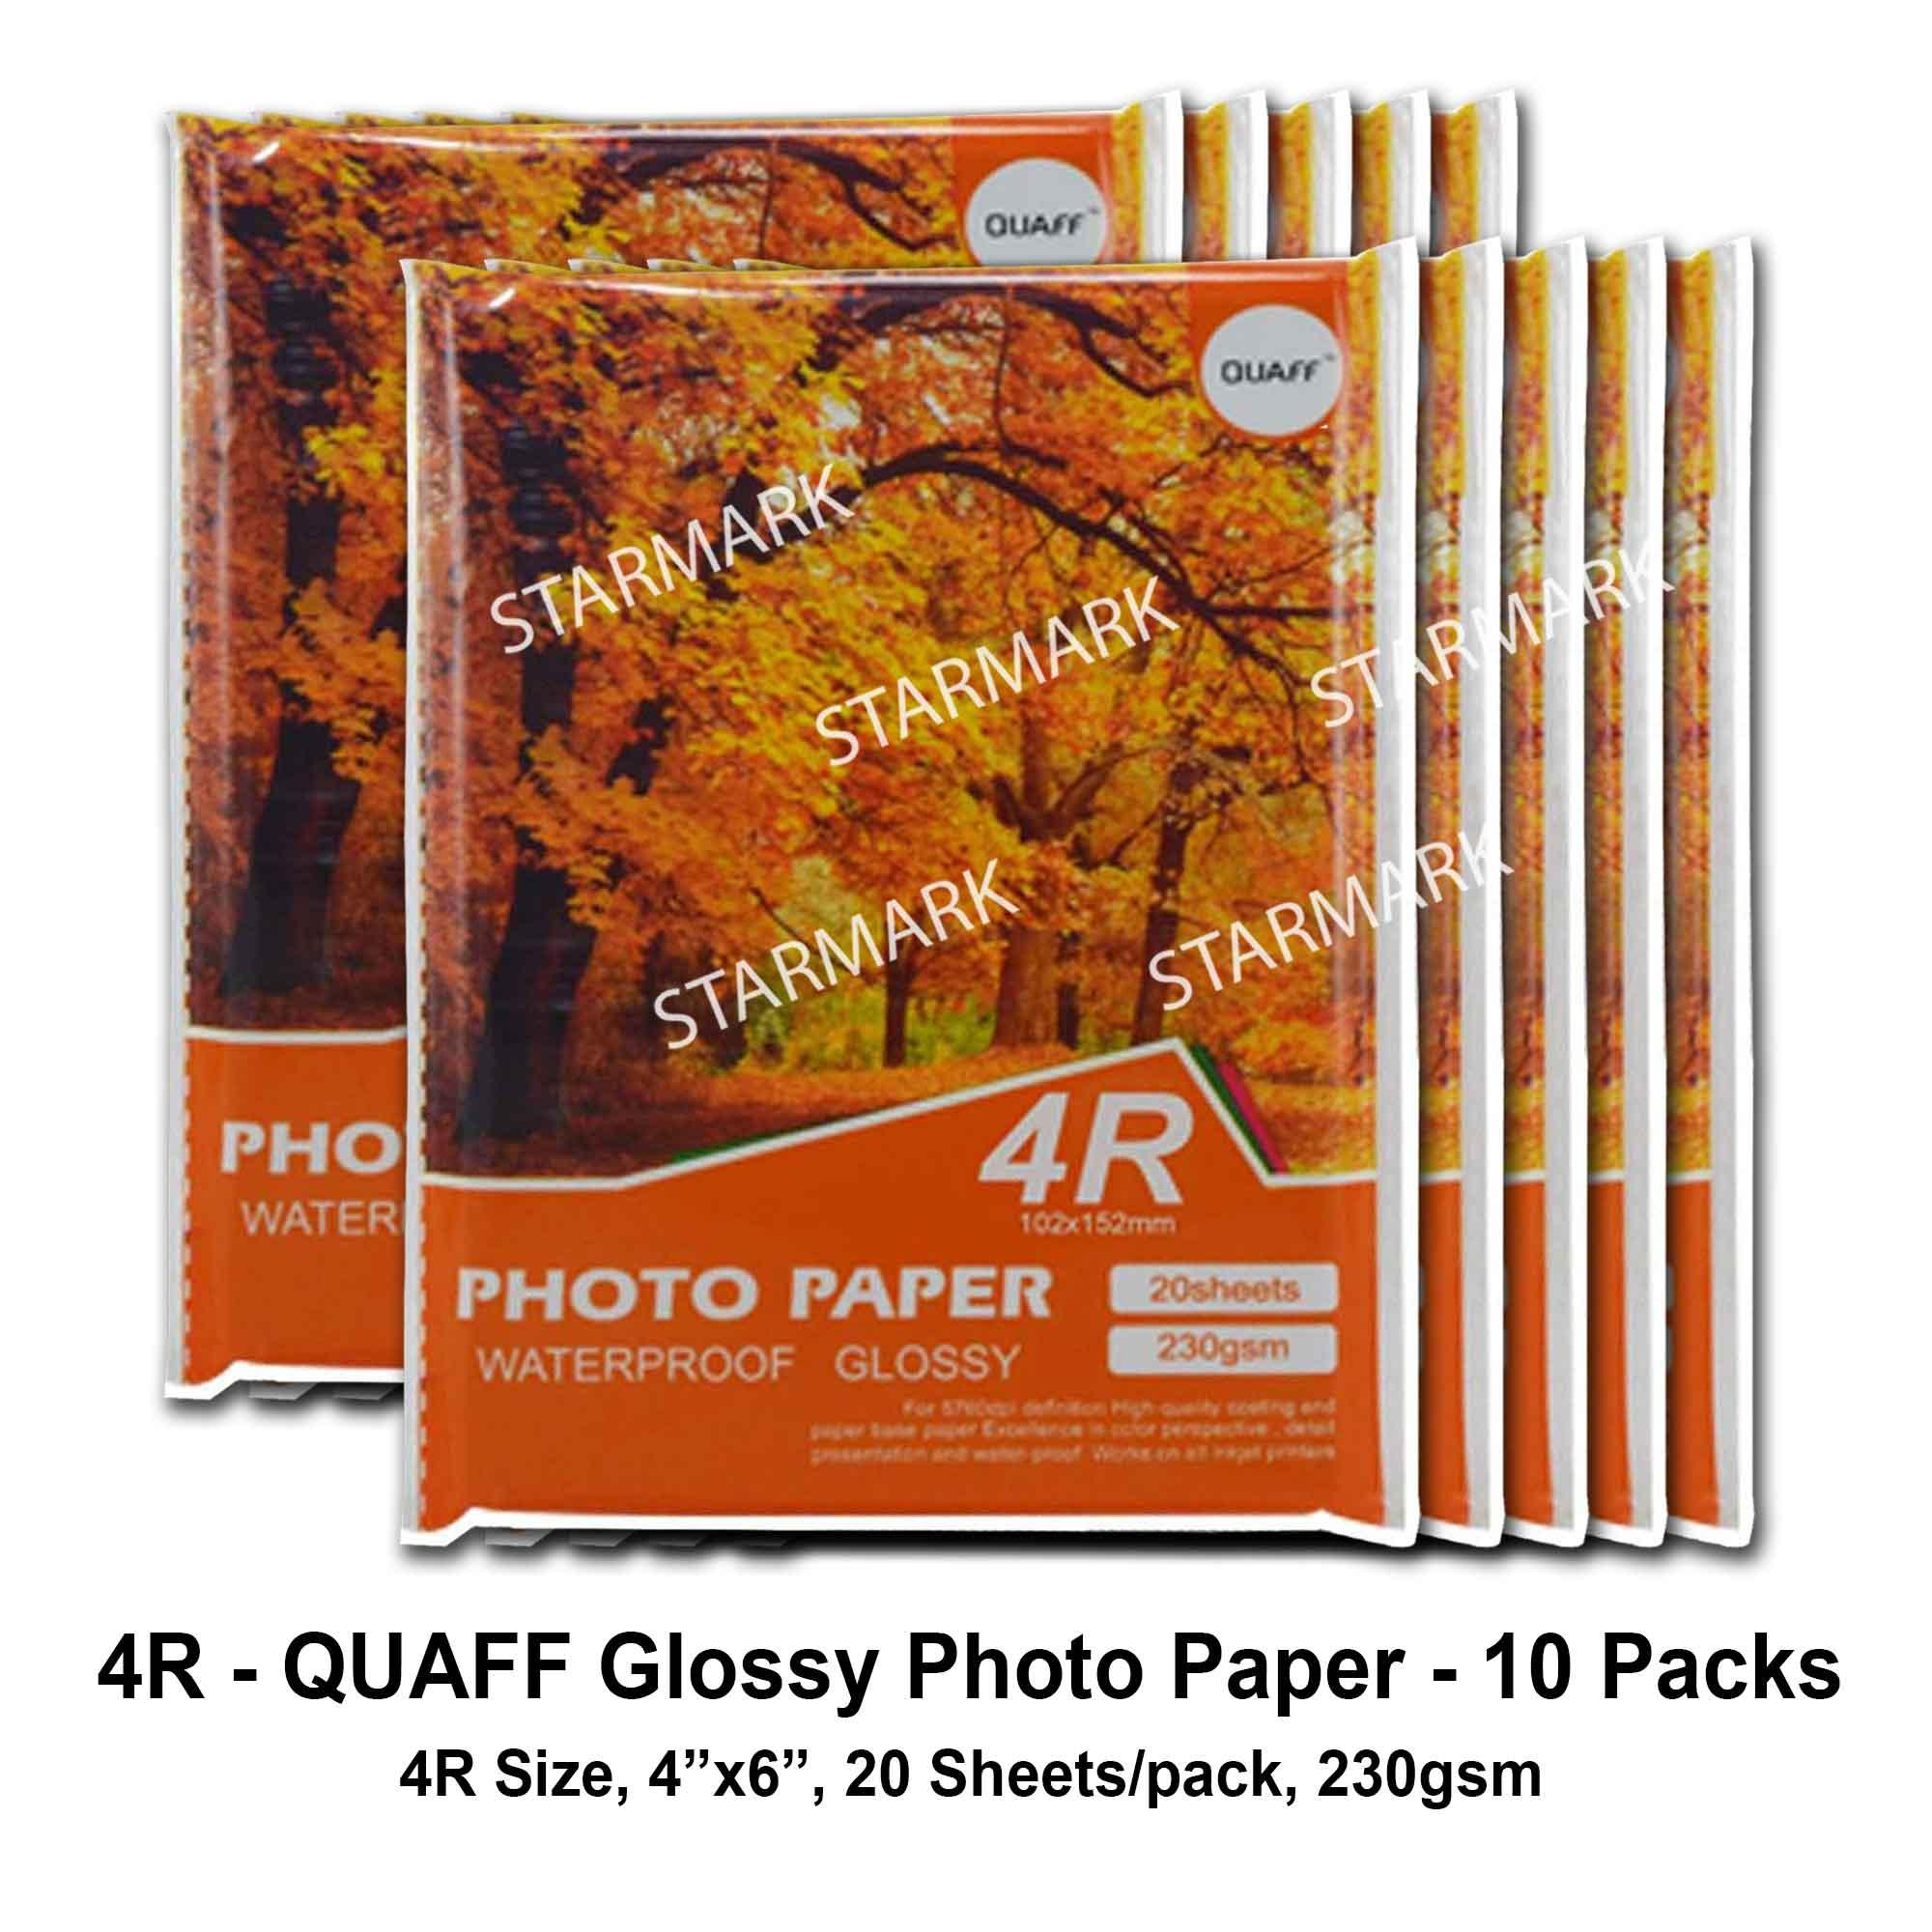 10 Packs Quaff Glossy Photo Paper Papers Photopaper Photopapers - 4r Size, 4x6 Inches, 20 Sheets / Pack, 230gsm By Starmark Enterprises.